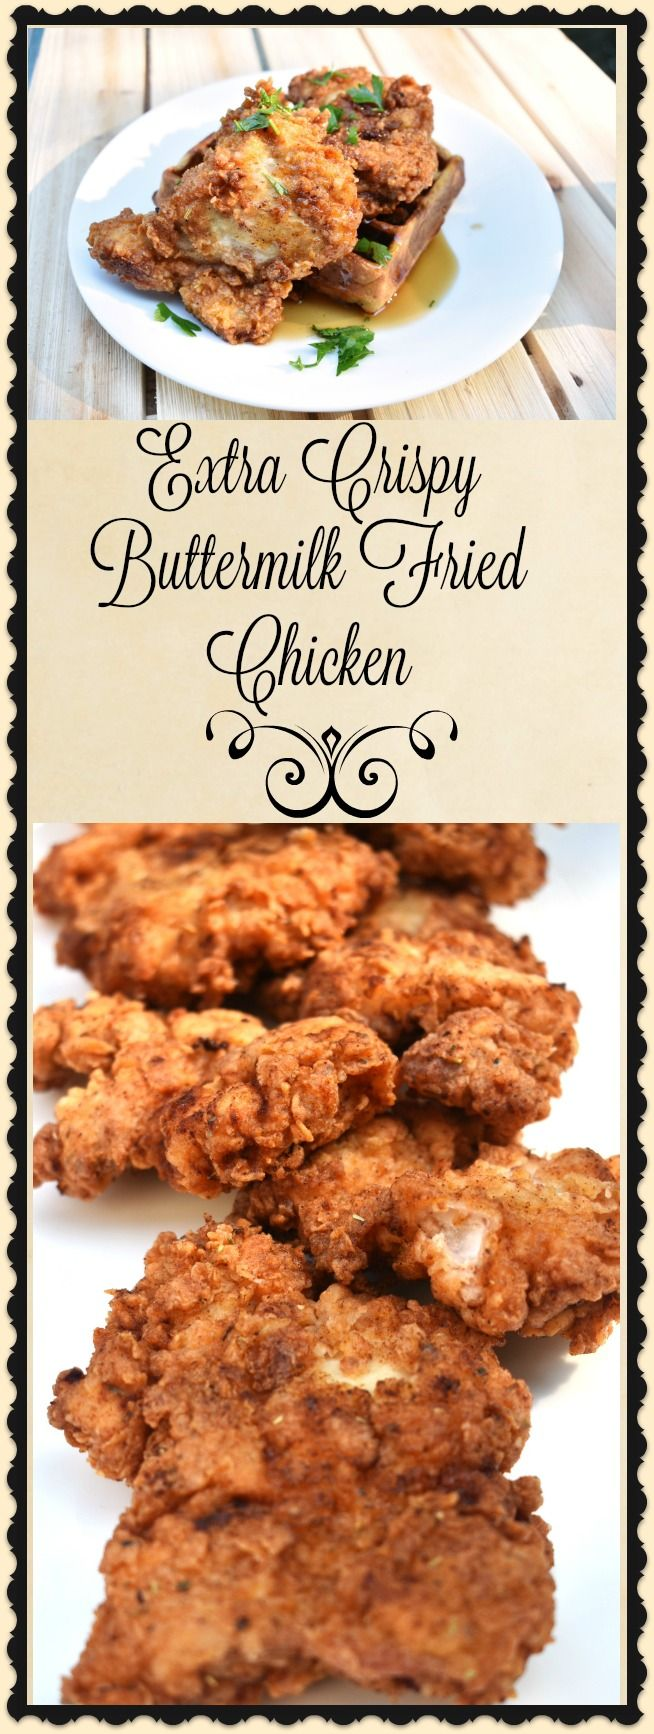 Extra Crispy Buttermilk Fried Chicken is the king of all comfort foods. The combination of crisp, crunchy, breading and moist, juicy, meat is the culinary equivalent of a hug from your grandmother. This recipe is perfect for a Saturday afternoon picnic, served with waffles for brunch, or for a classic Sunday dinner. Whenever you decide to eat it, I'm sure you'll love it.